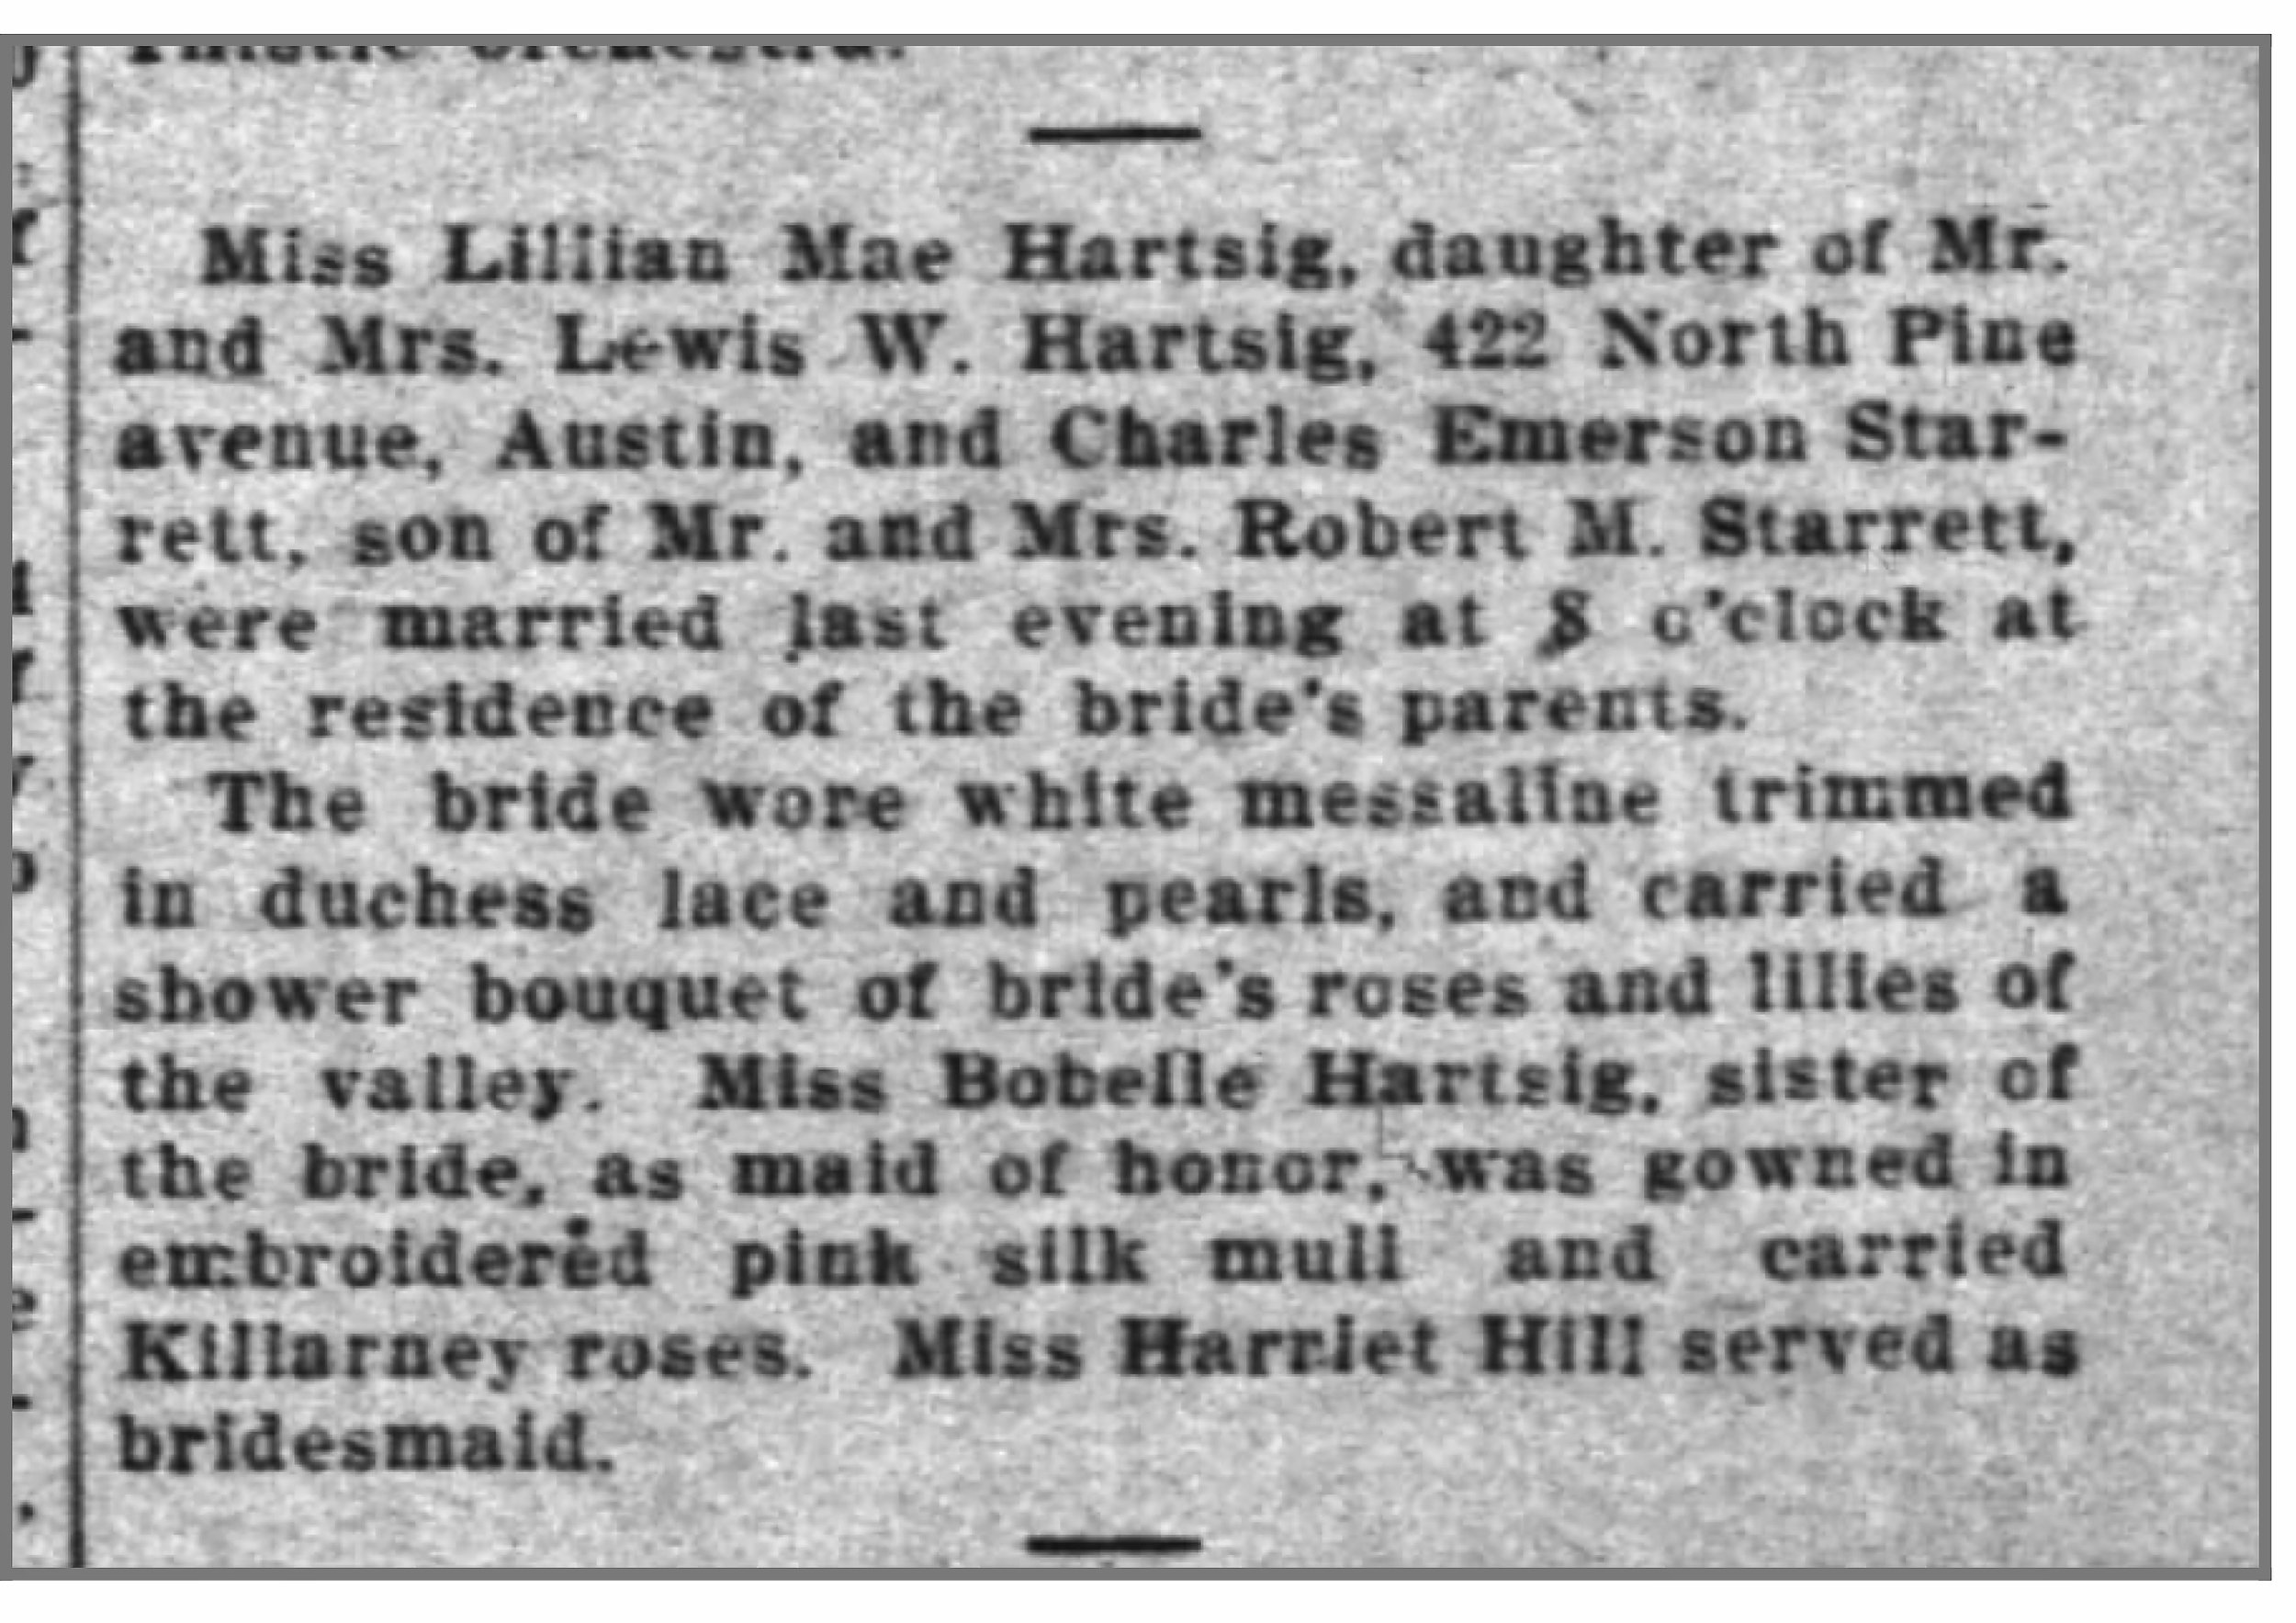 The April 22, 1909 wedding notice of Vincent and Lillian from  The Chicago Inter Ocean  newspaper.